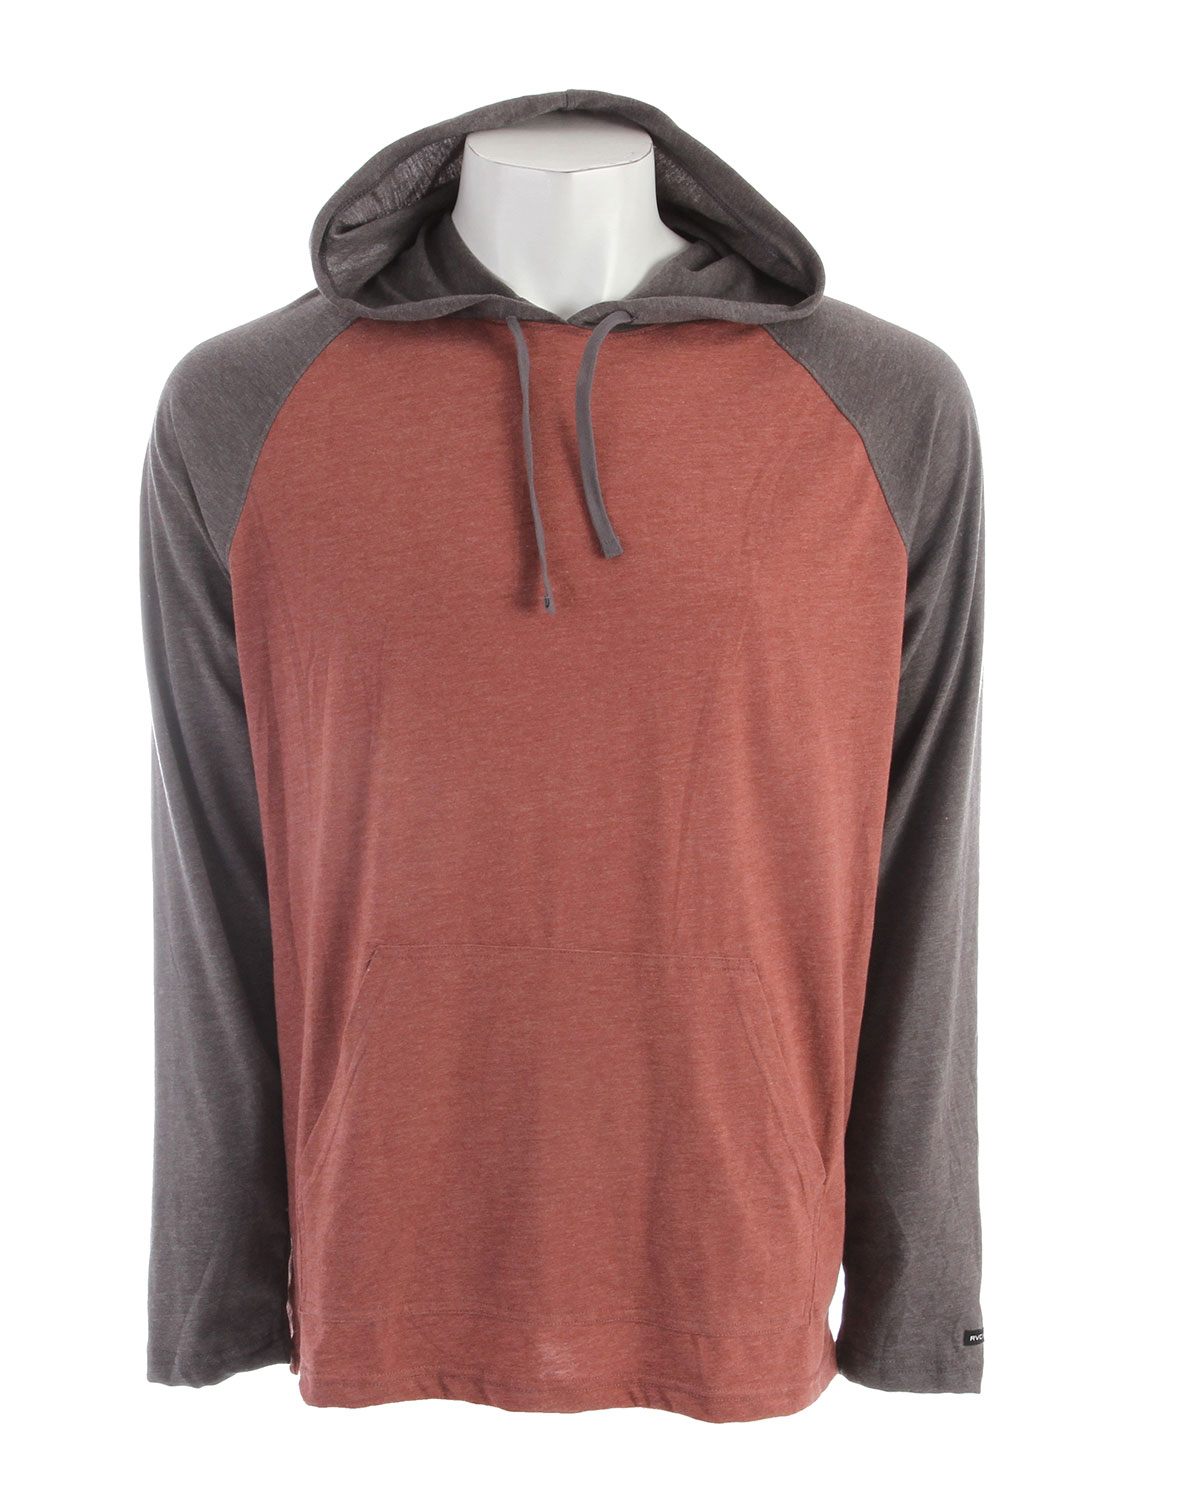 Key Features of the RVCA Castro Raglan: Regular Fit - 55% Cotton/45% Polyester jersey hooded raglan with front pouch pocket RVCA solo label at wearer's left sleeve Contrast hood, sleeves and drawcord. - $24.95